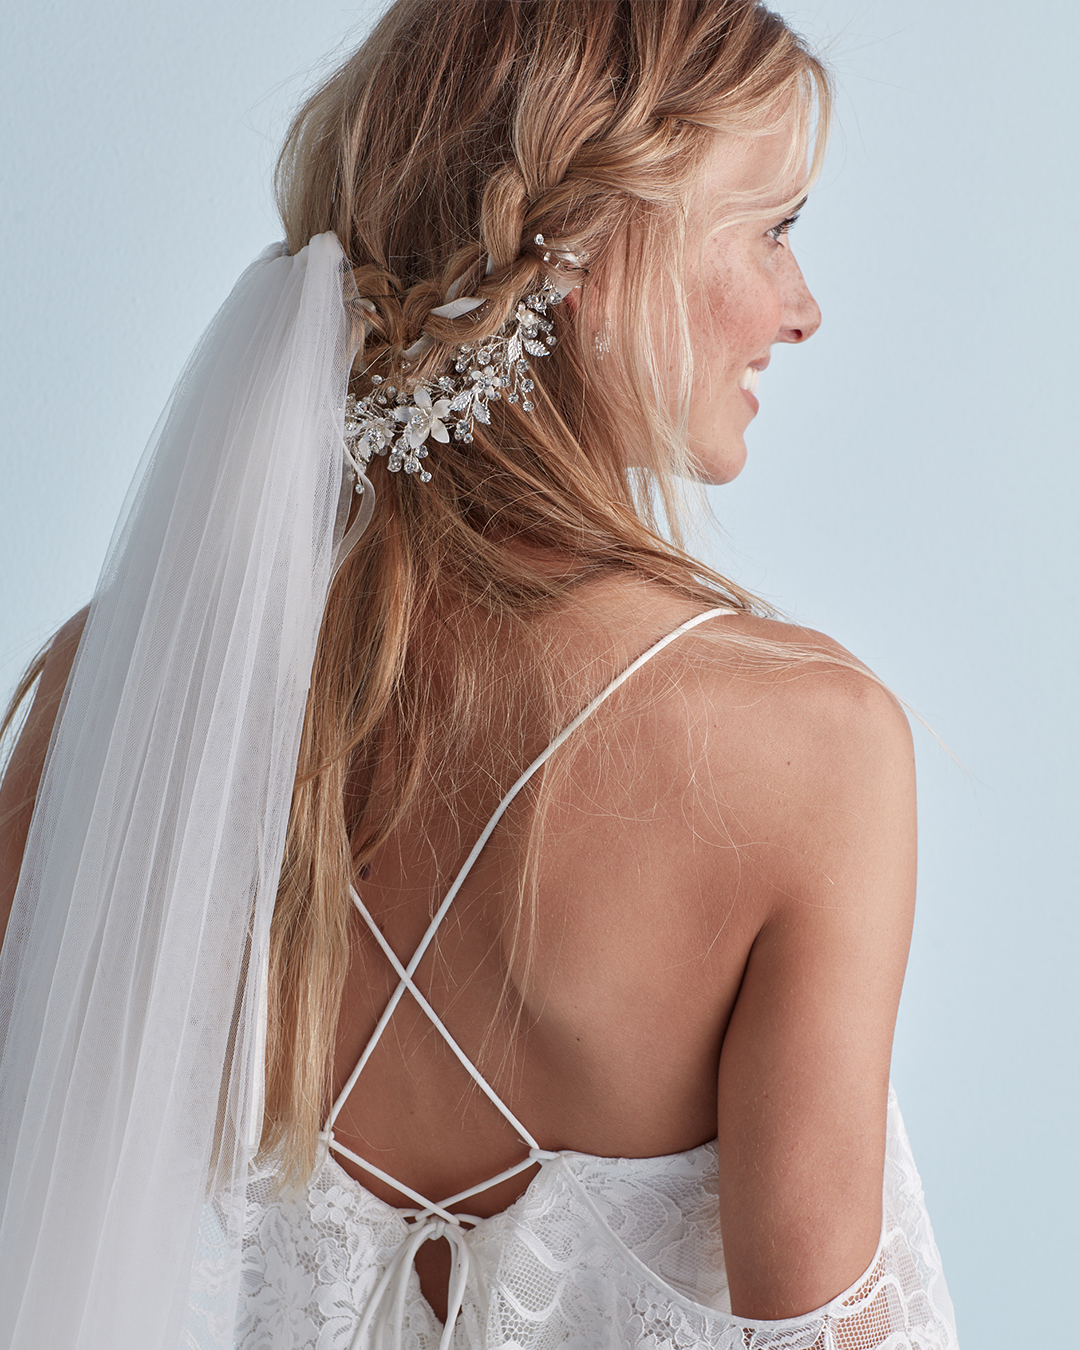 Wedding hairstyle with braid, crystal headband, and veil